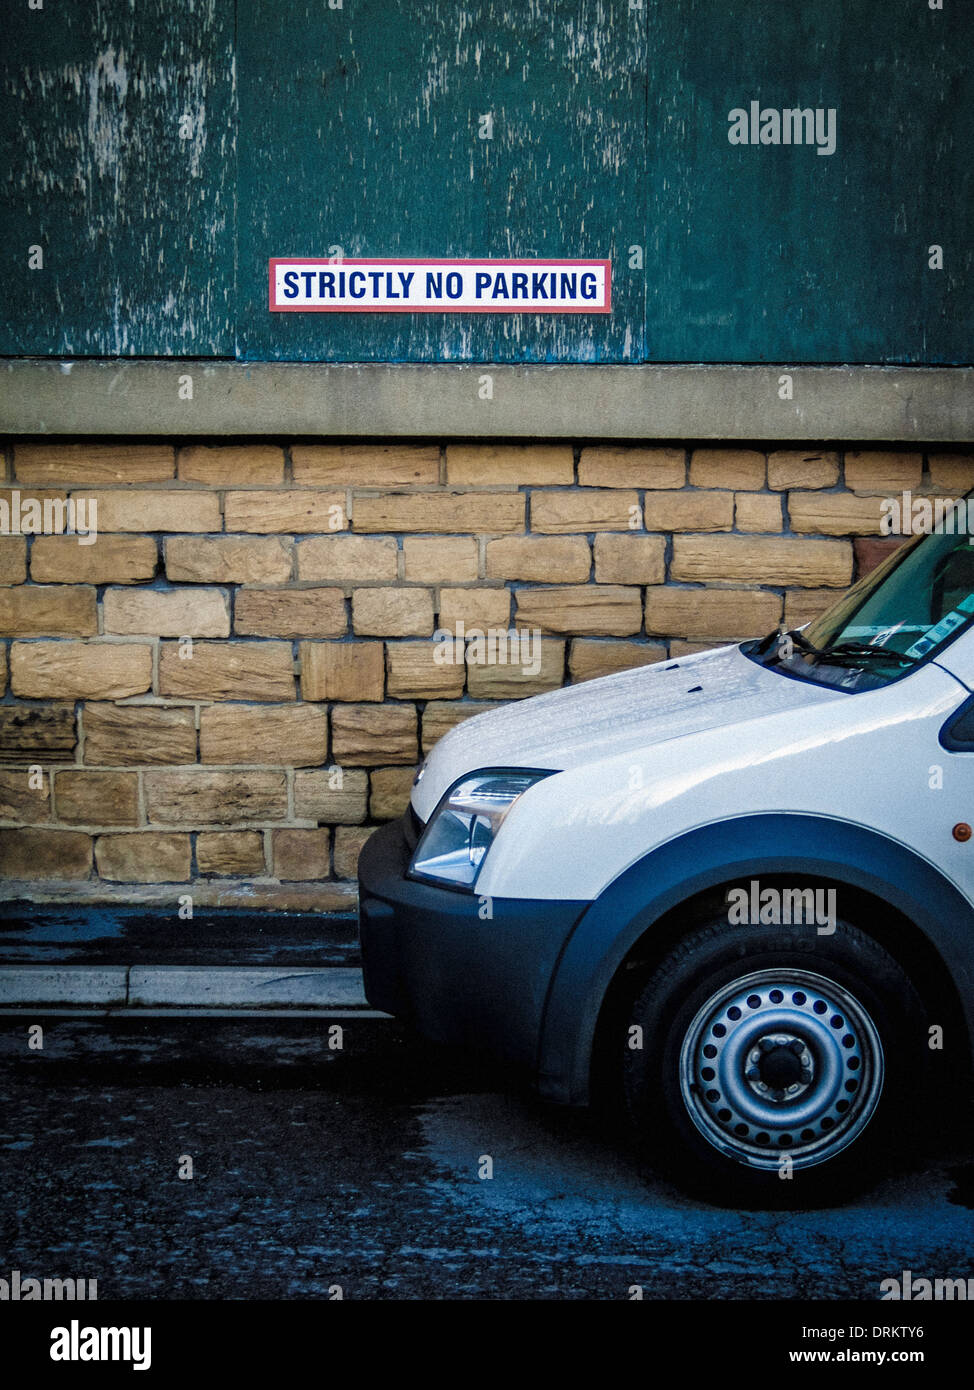 Vehicle parked in front of Strictly No Parking sign - Stock Image